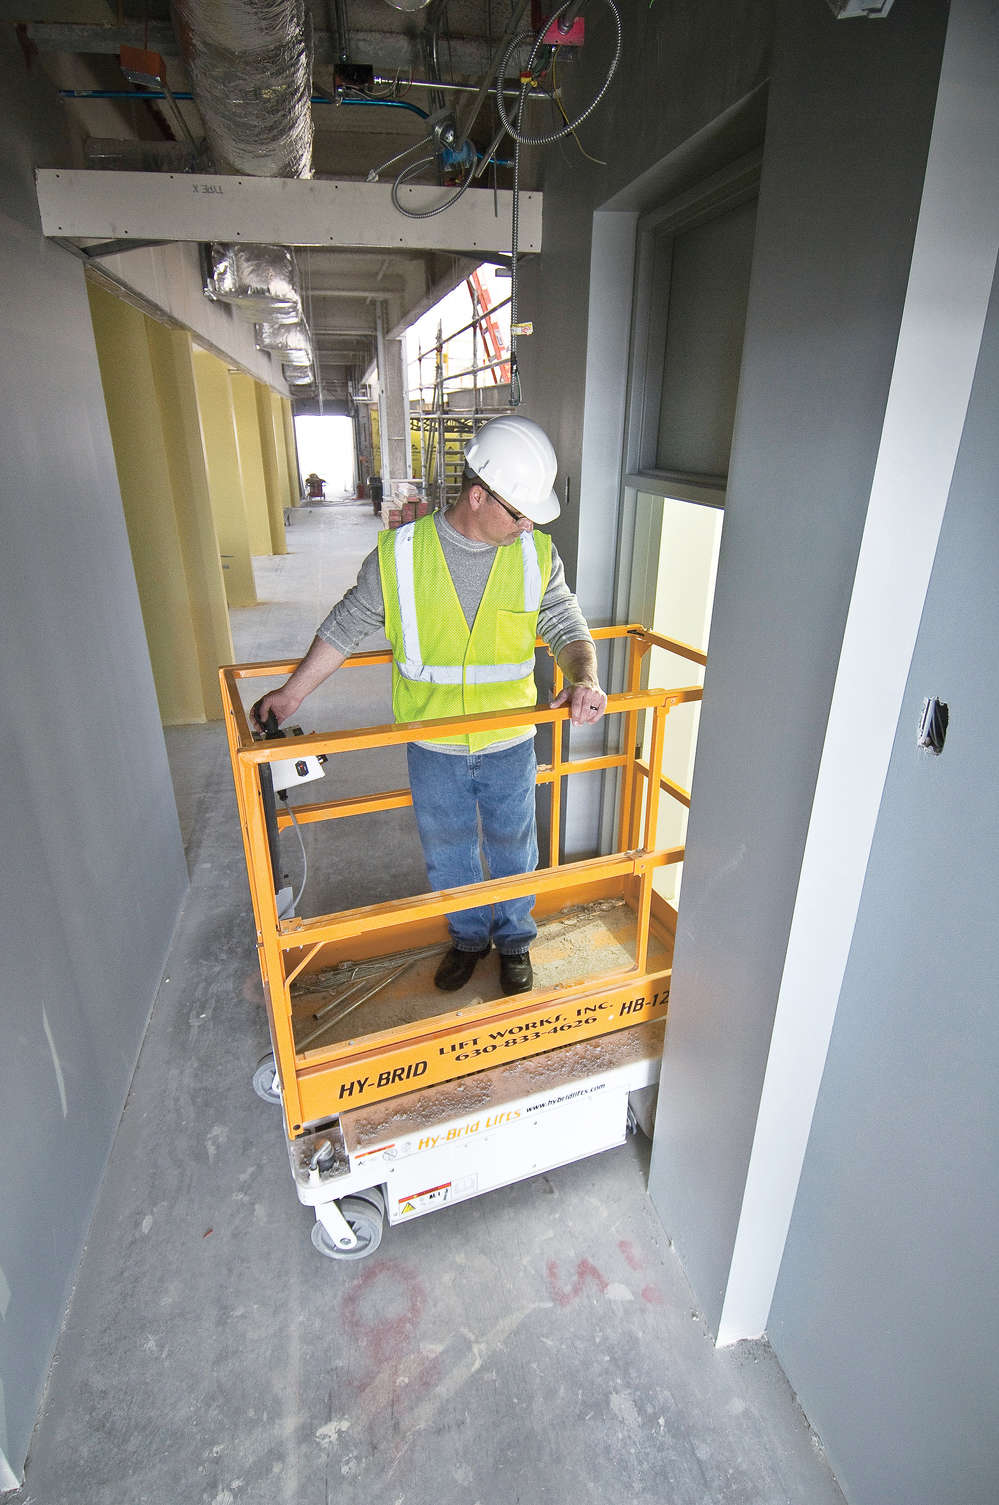 Some lifts feature a compact body and a zero-turn radius, allowing for easy navigation around corners, through hallways, and under overhead fixtures and support beams. These lifts are narrow enough to fit through doorframes and even inside elevators.